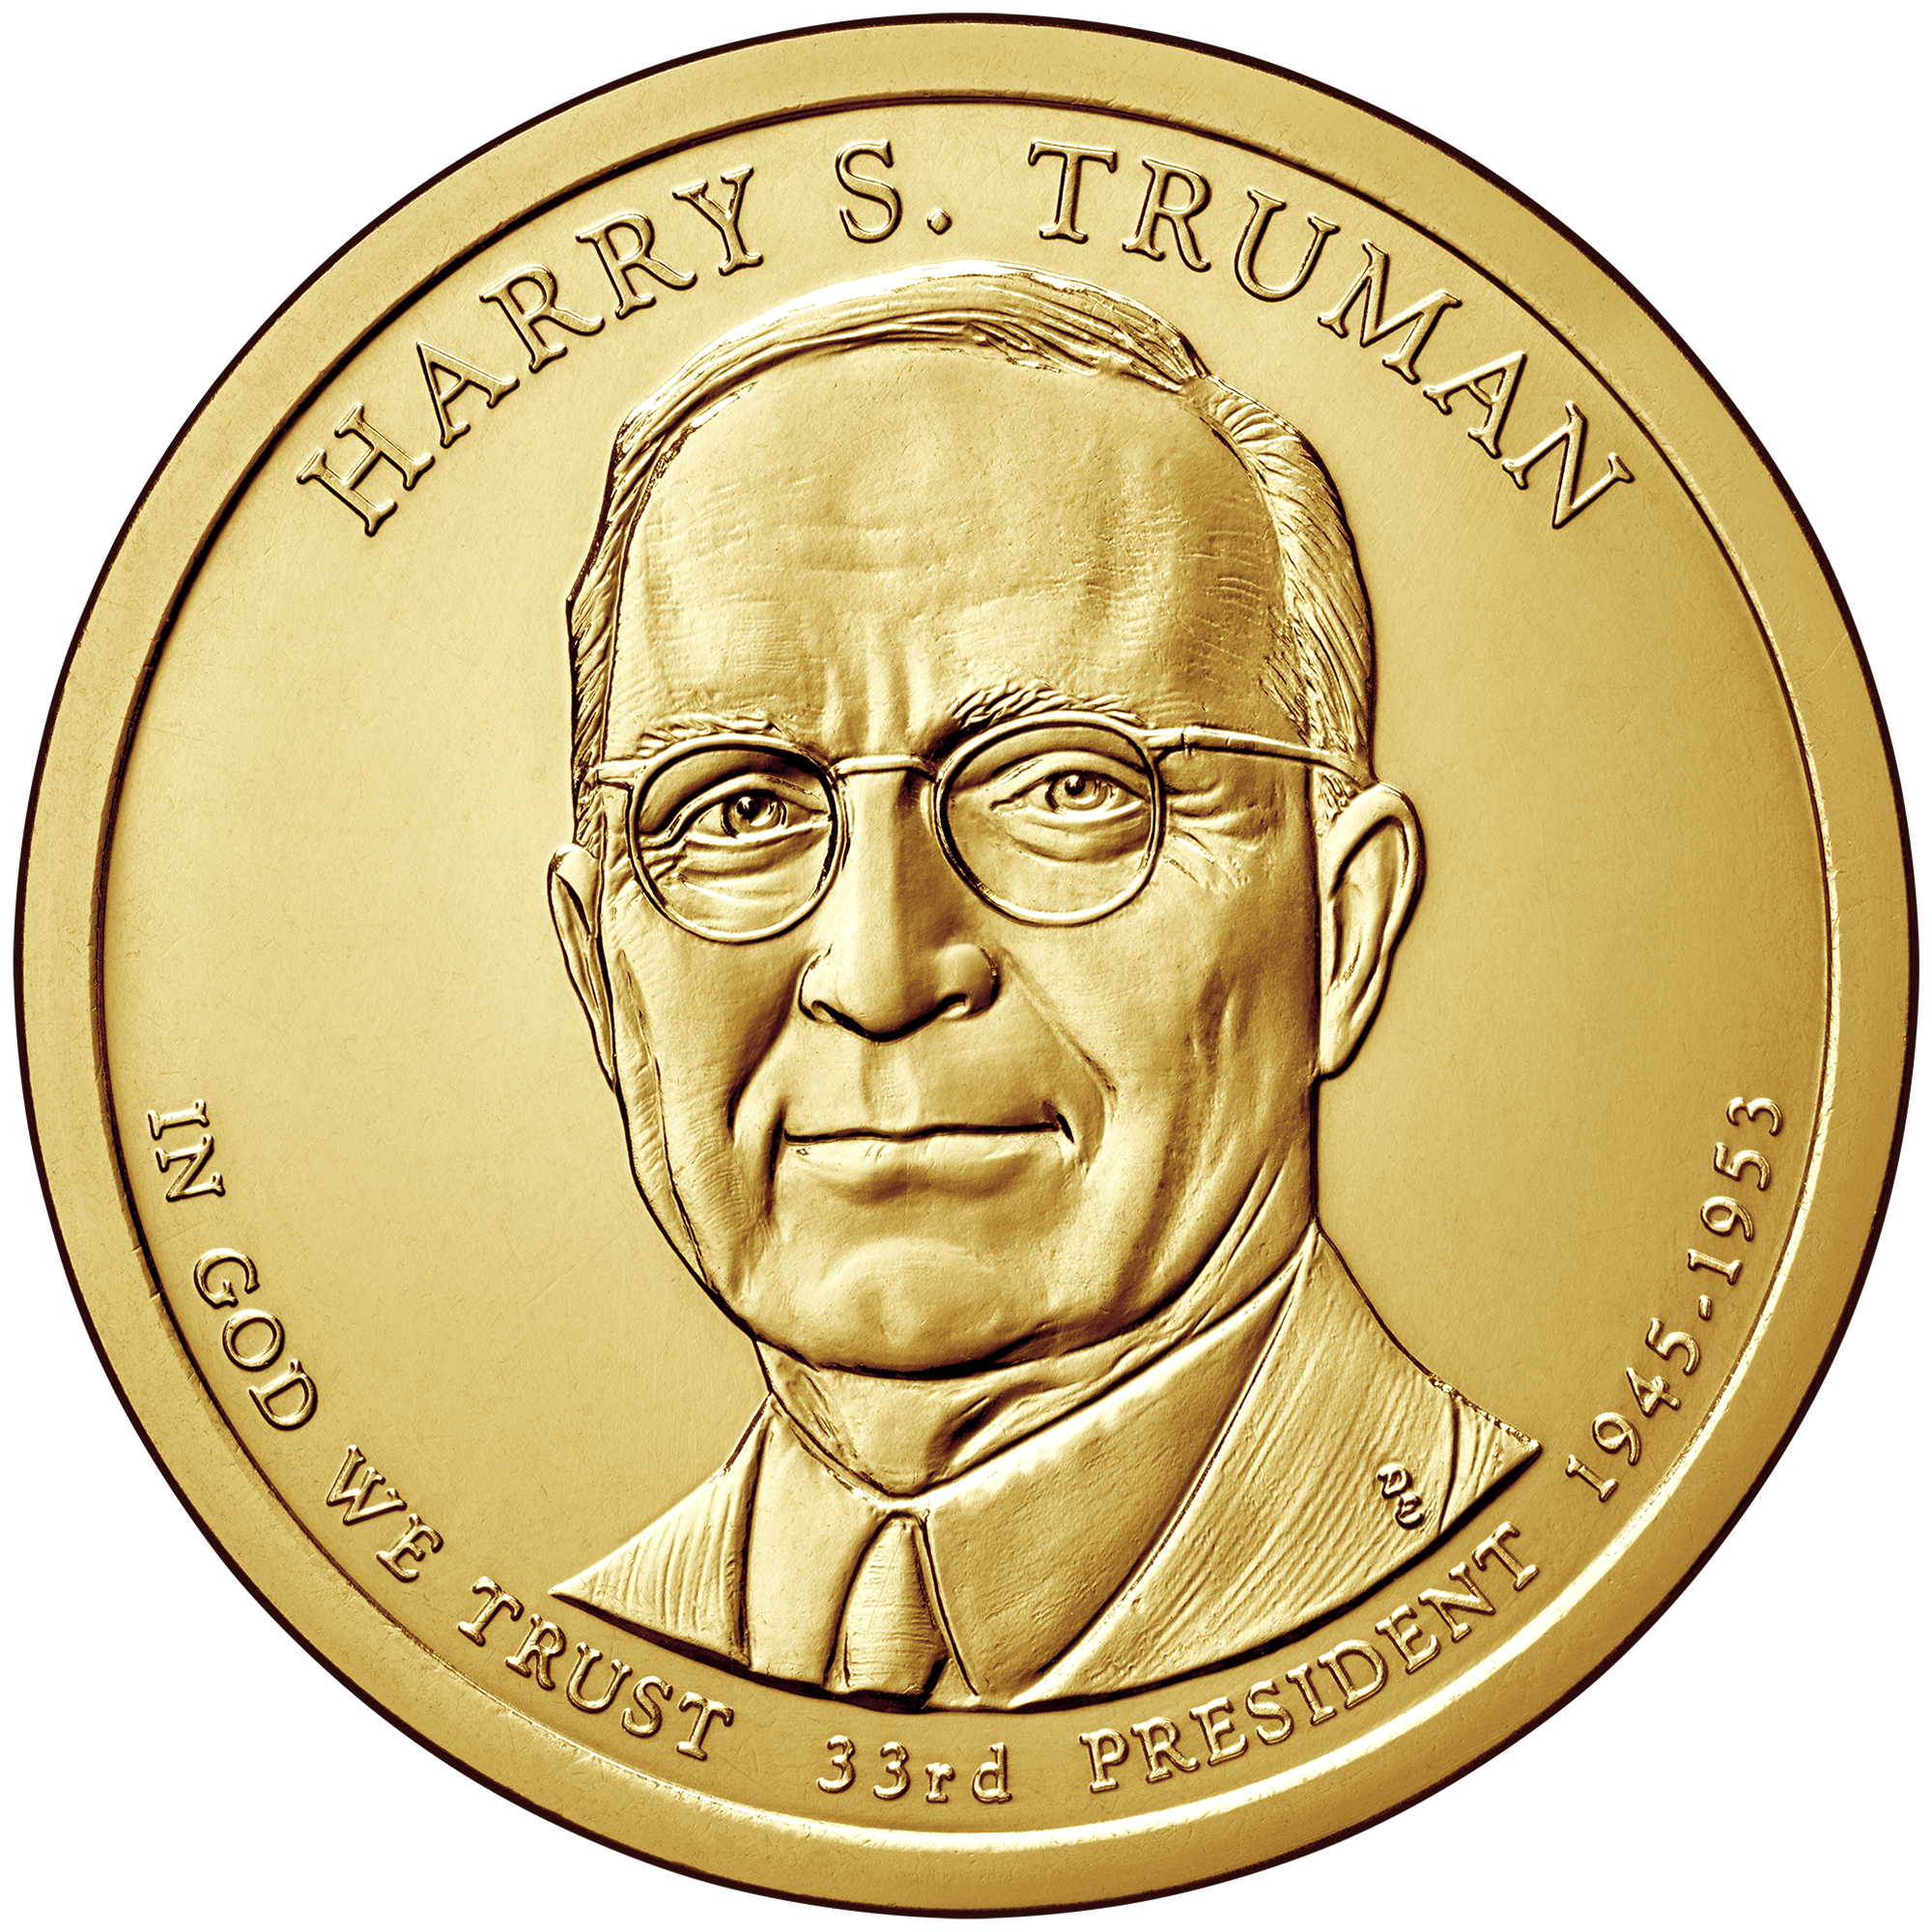 Harry S. Truman $1 Coin To Be Available February 5th